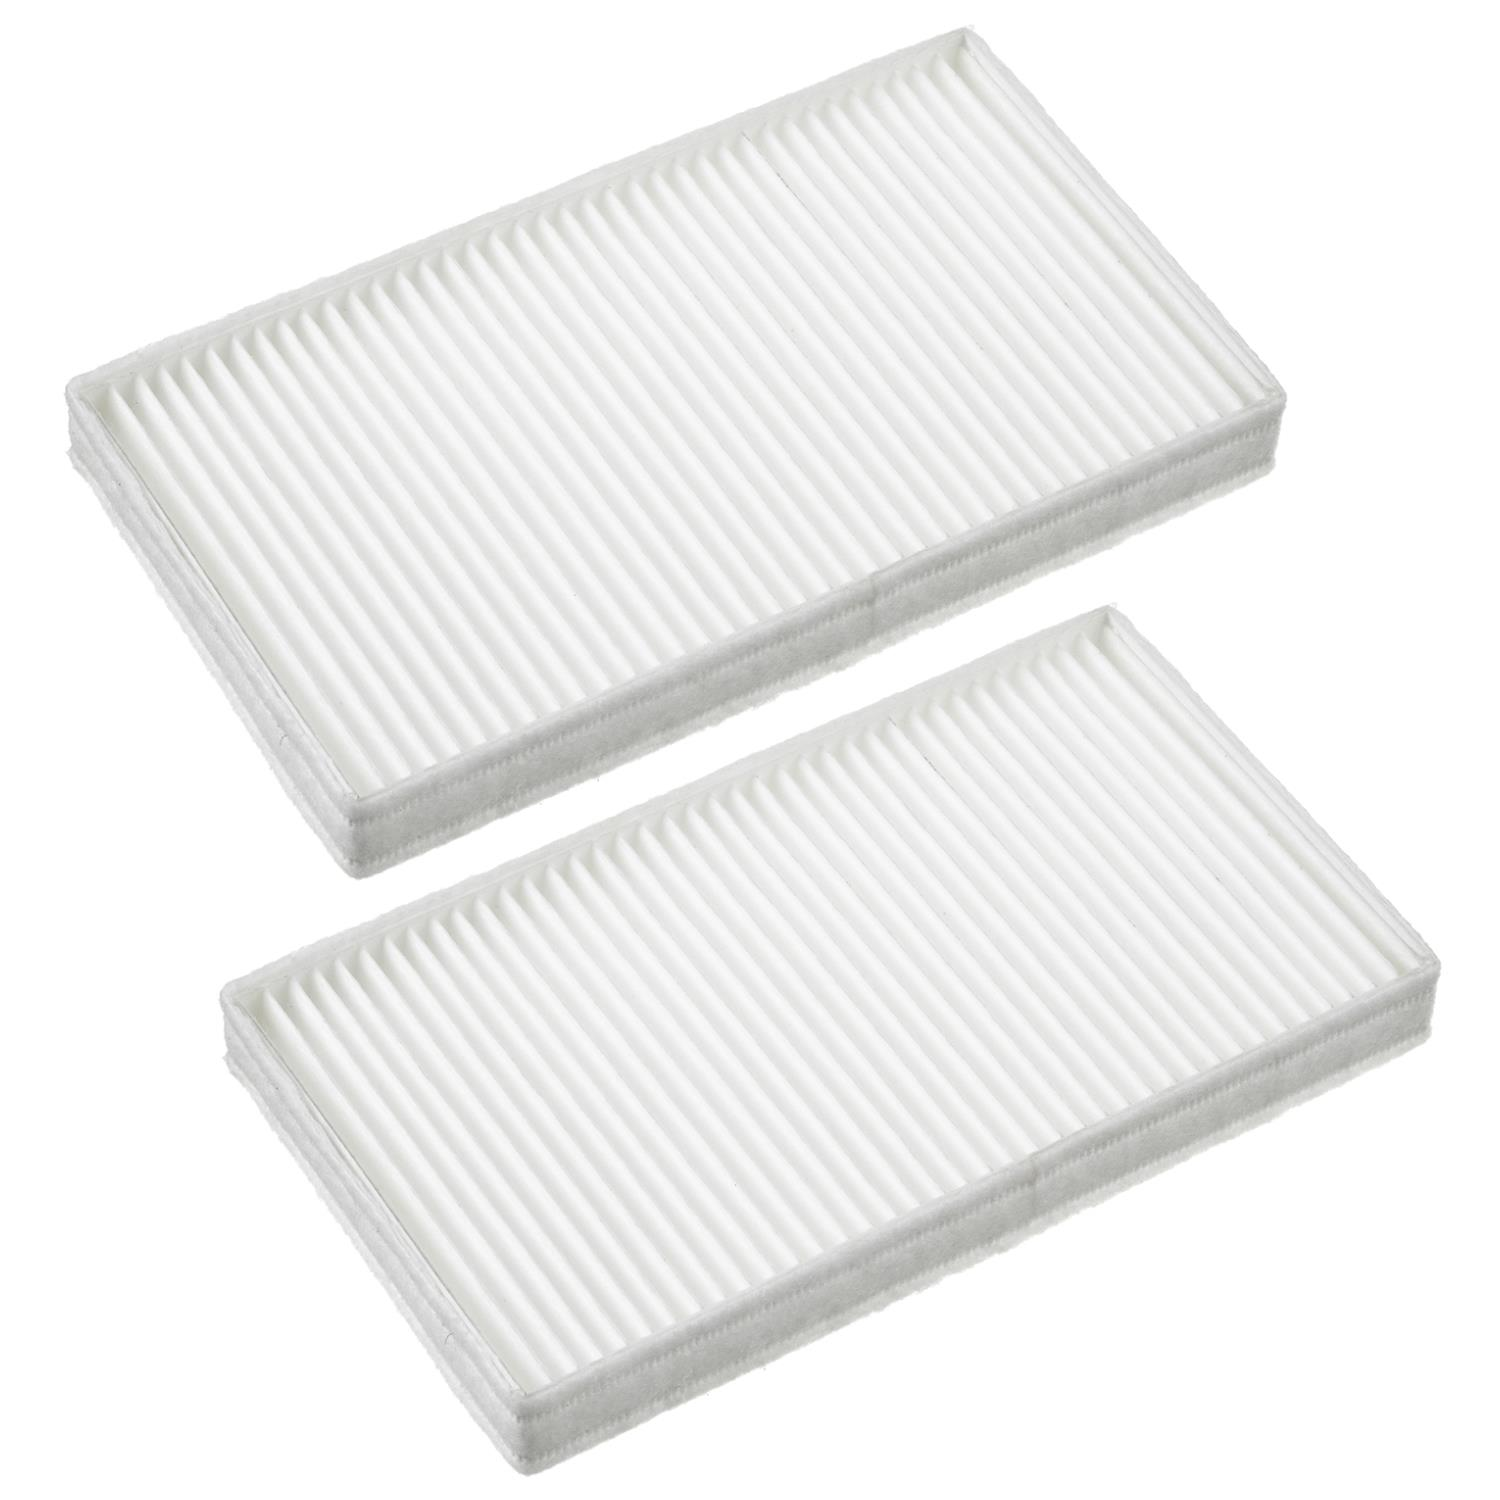 Atp Automotive Cf 25 Replacement Cabin Filter